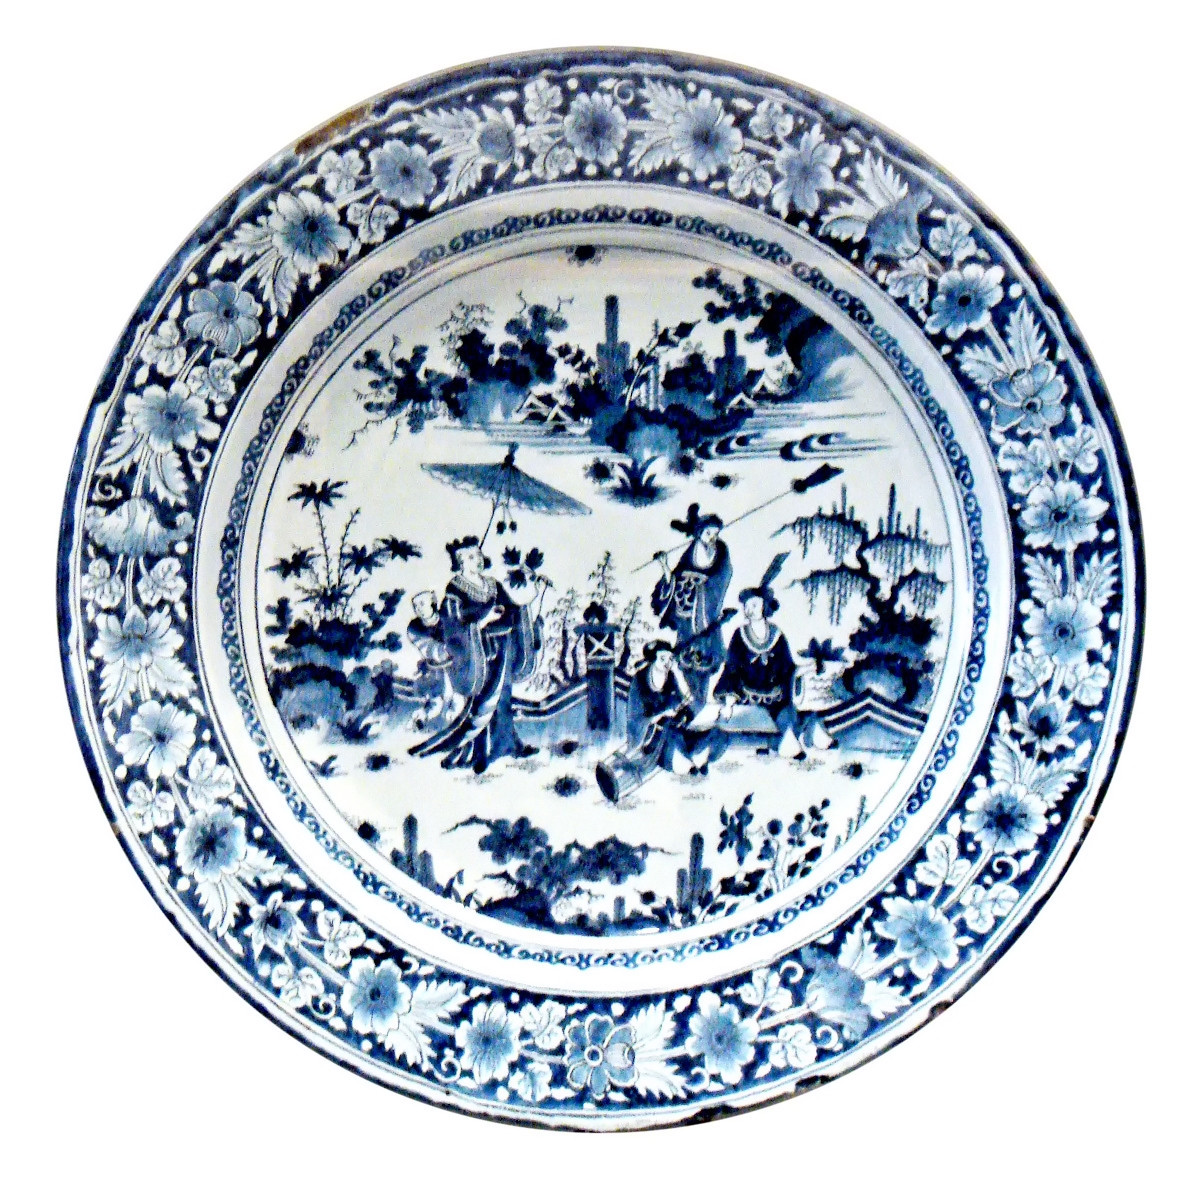 Faience with Chinese scenes. Nevers Manufactory. c. 1680